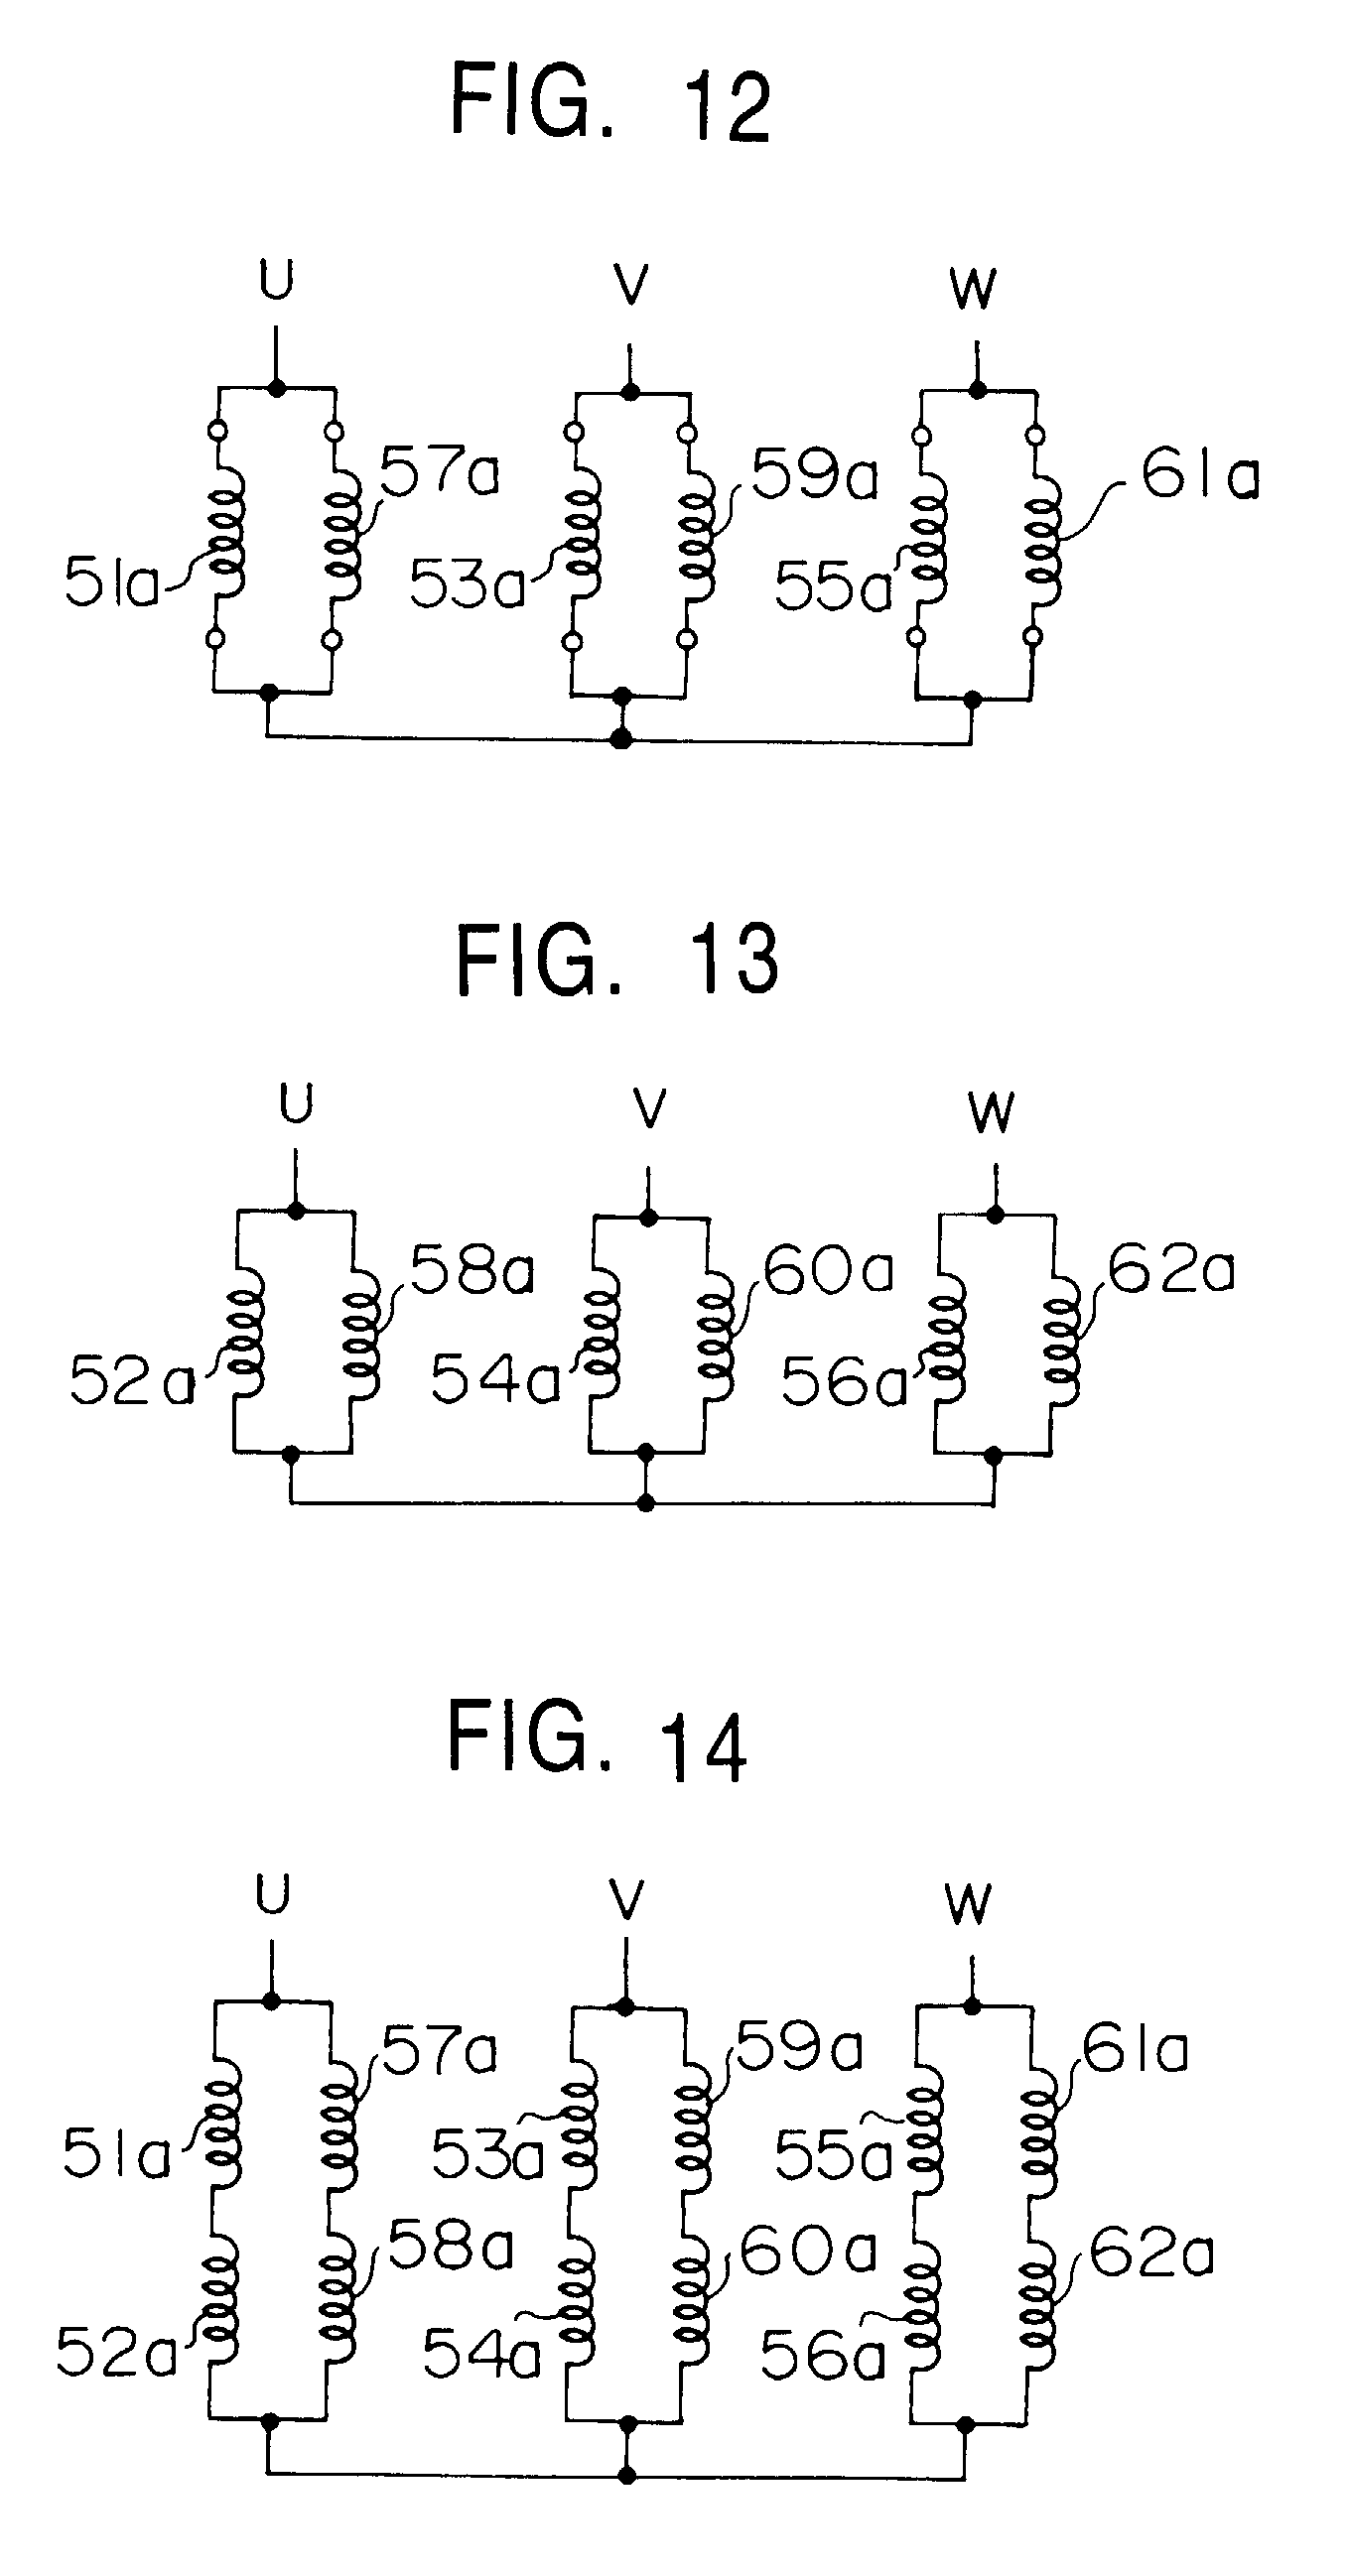 Leroy somer motor wiring diagram wiring diagram and schematics patent drawing asfbconference2016 Choice Image